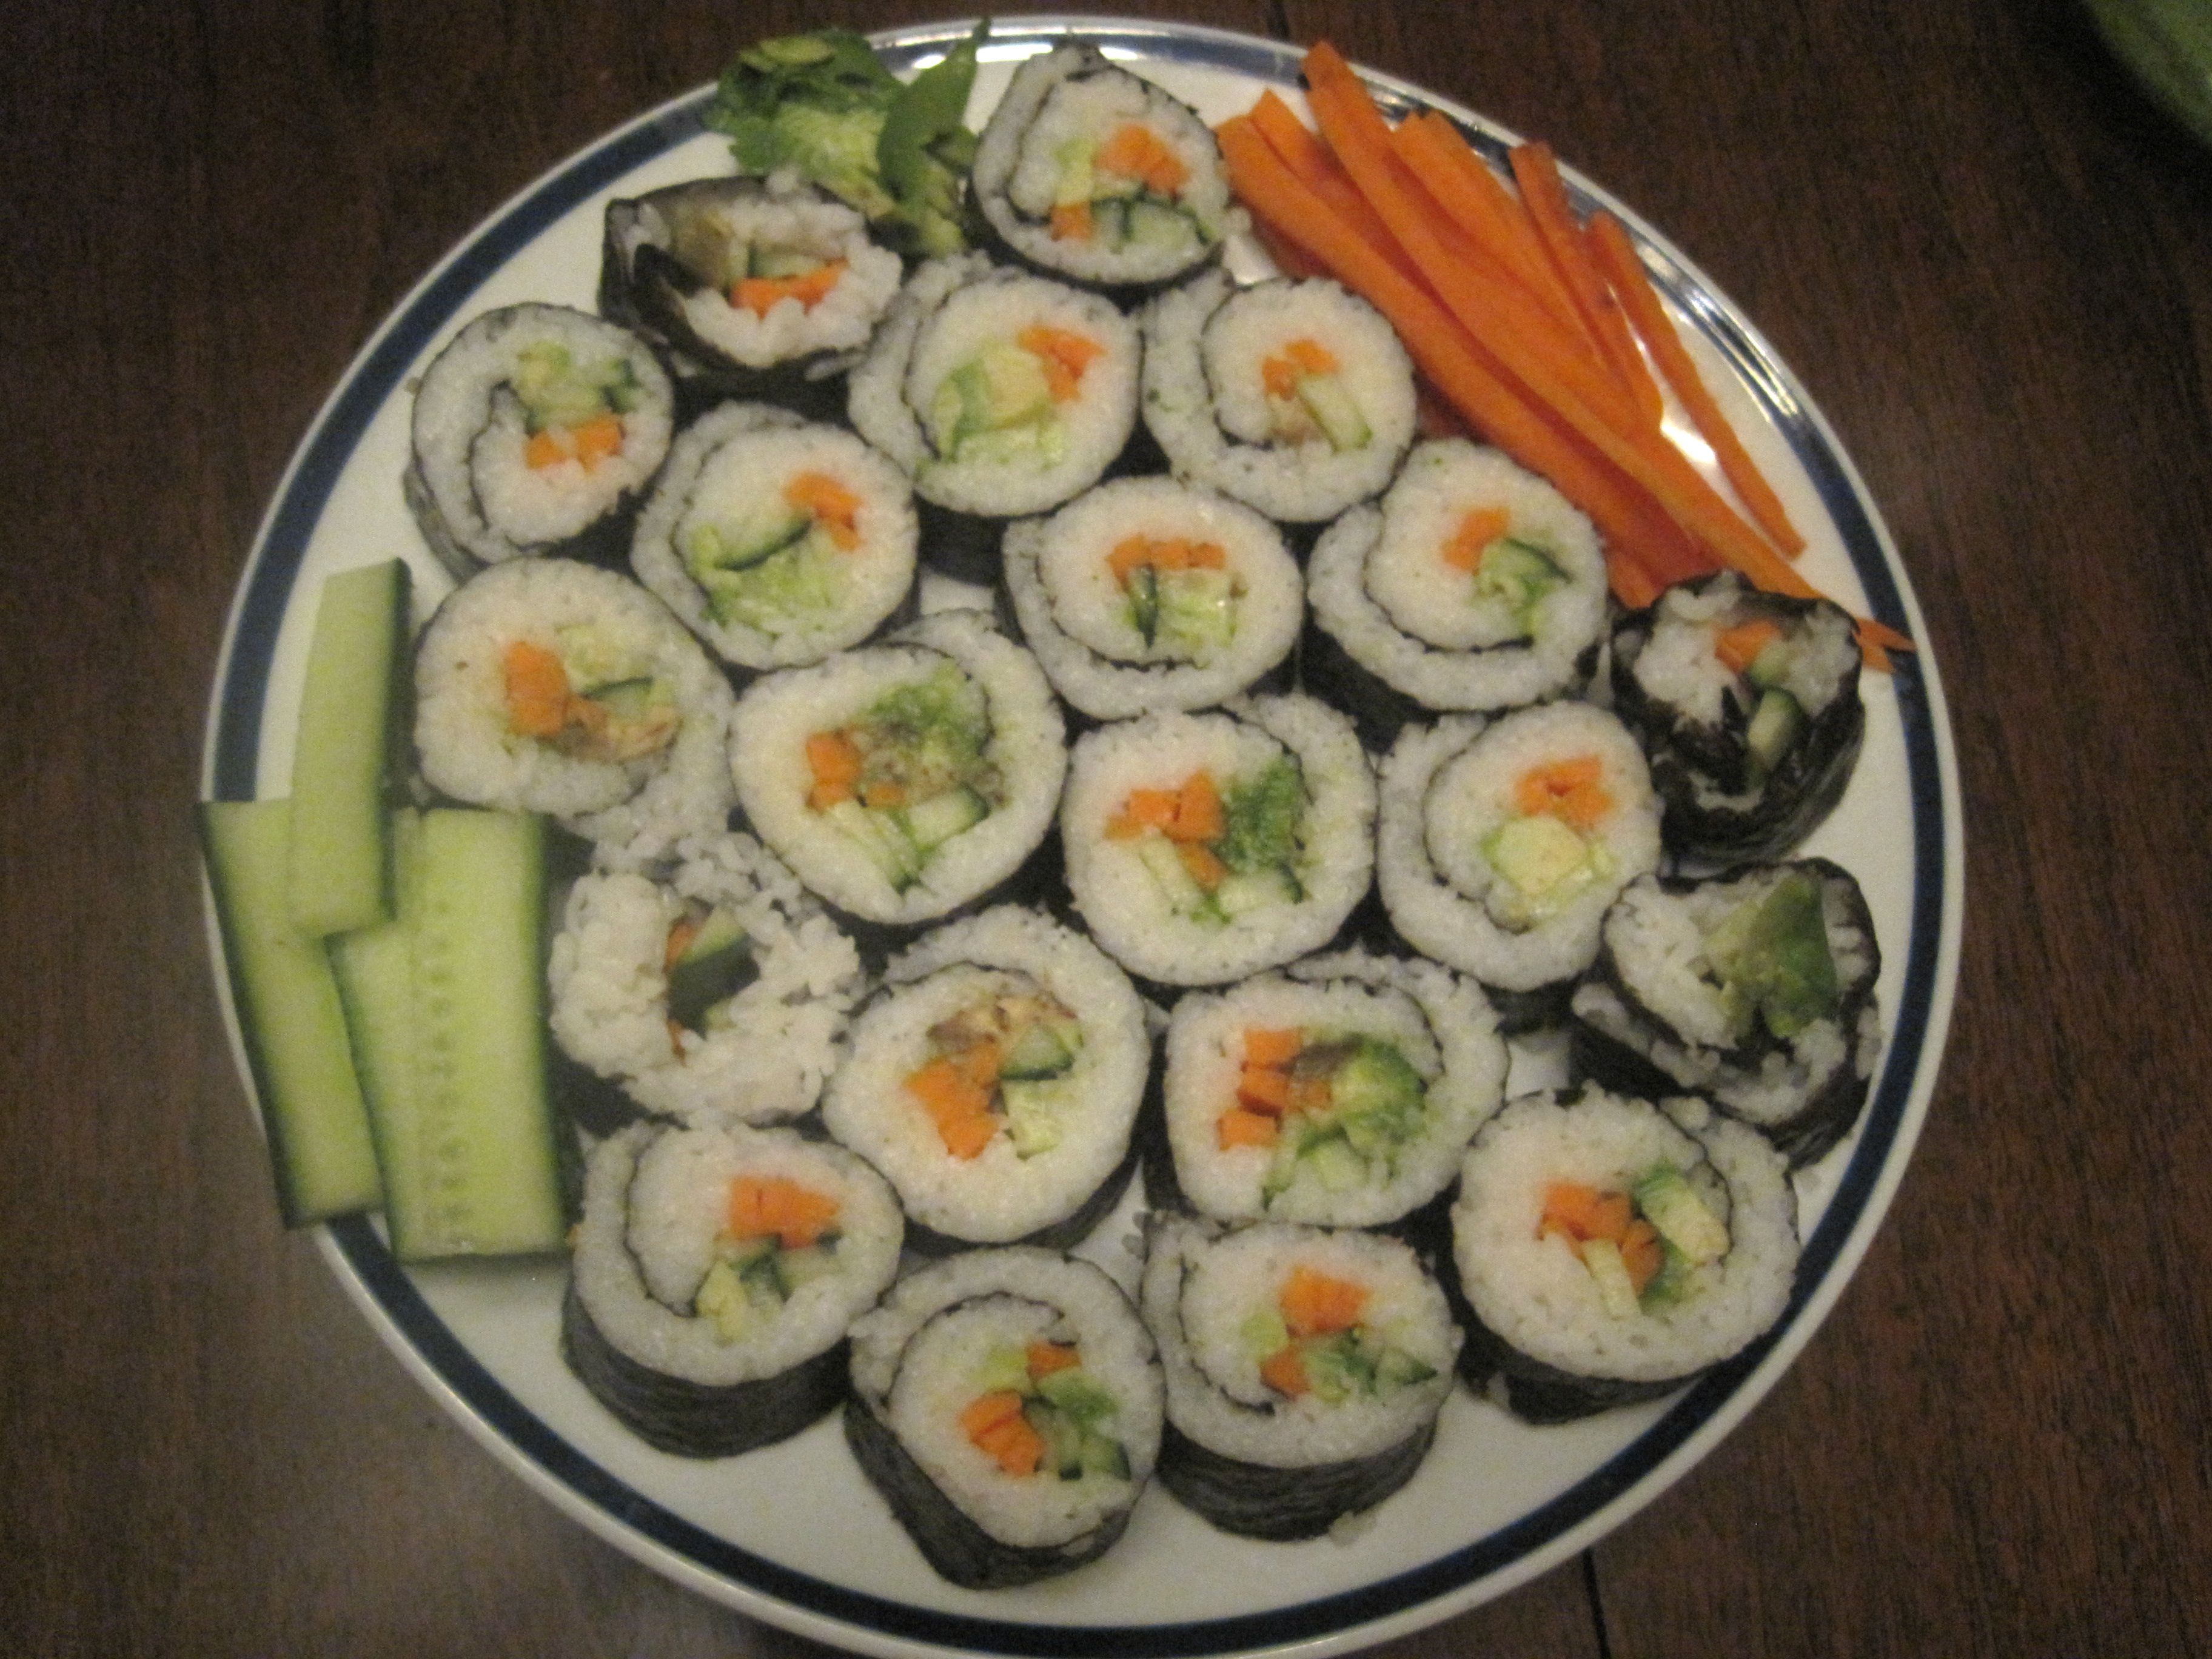 Cucumber And Avocado Summer Rolls With Mustard-Soy Sauce Recipe ...